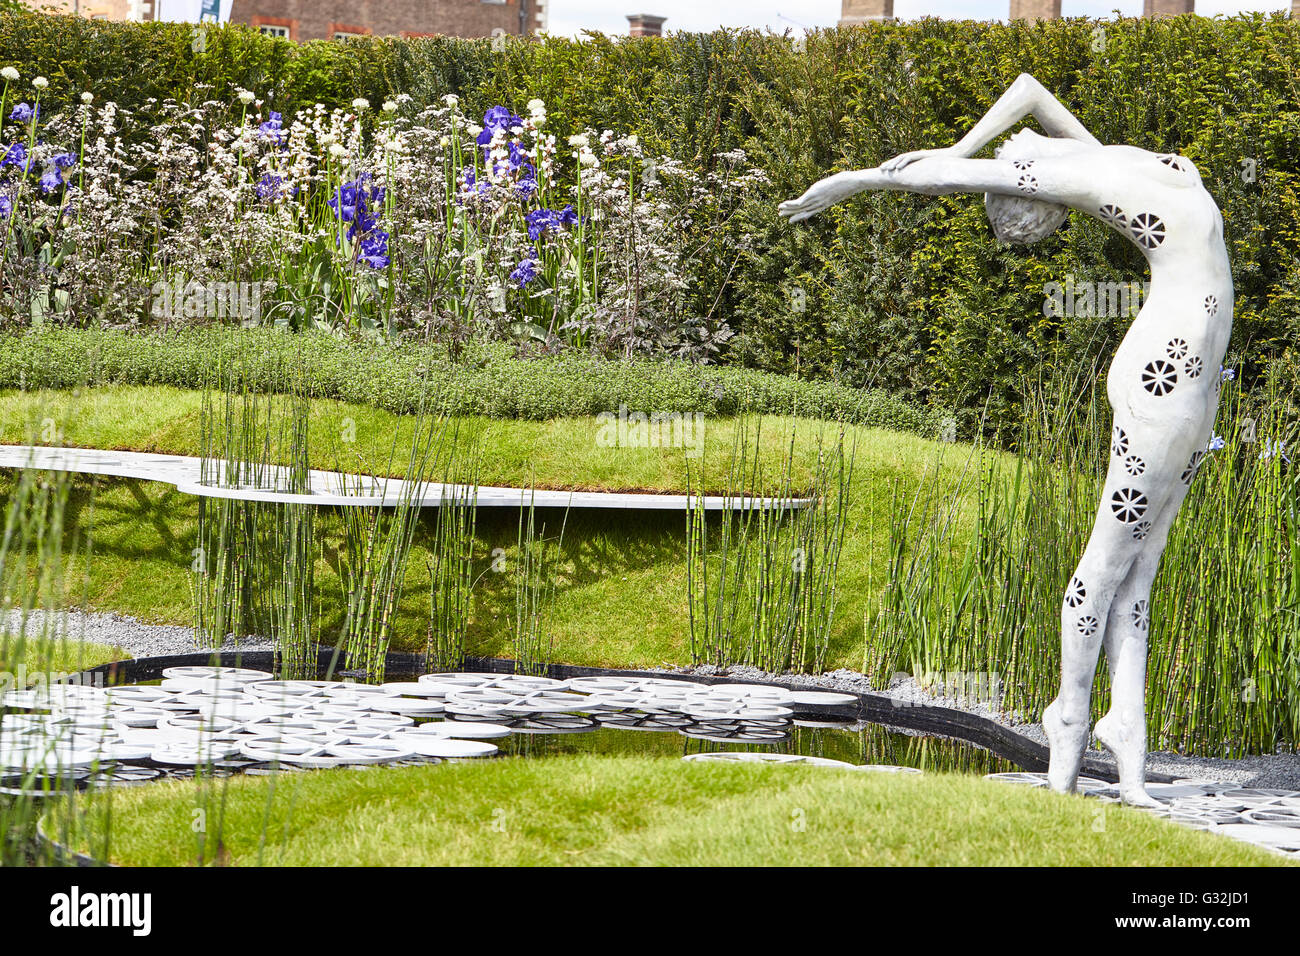 Chelsea Flower Show 2016 The Imperial Garden Revive Tatyana Goltsova - Stock Image